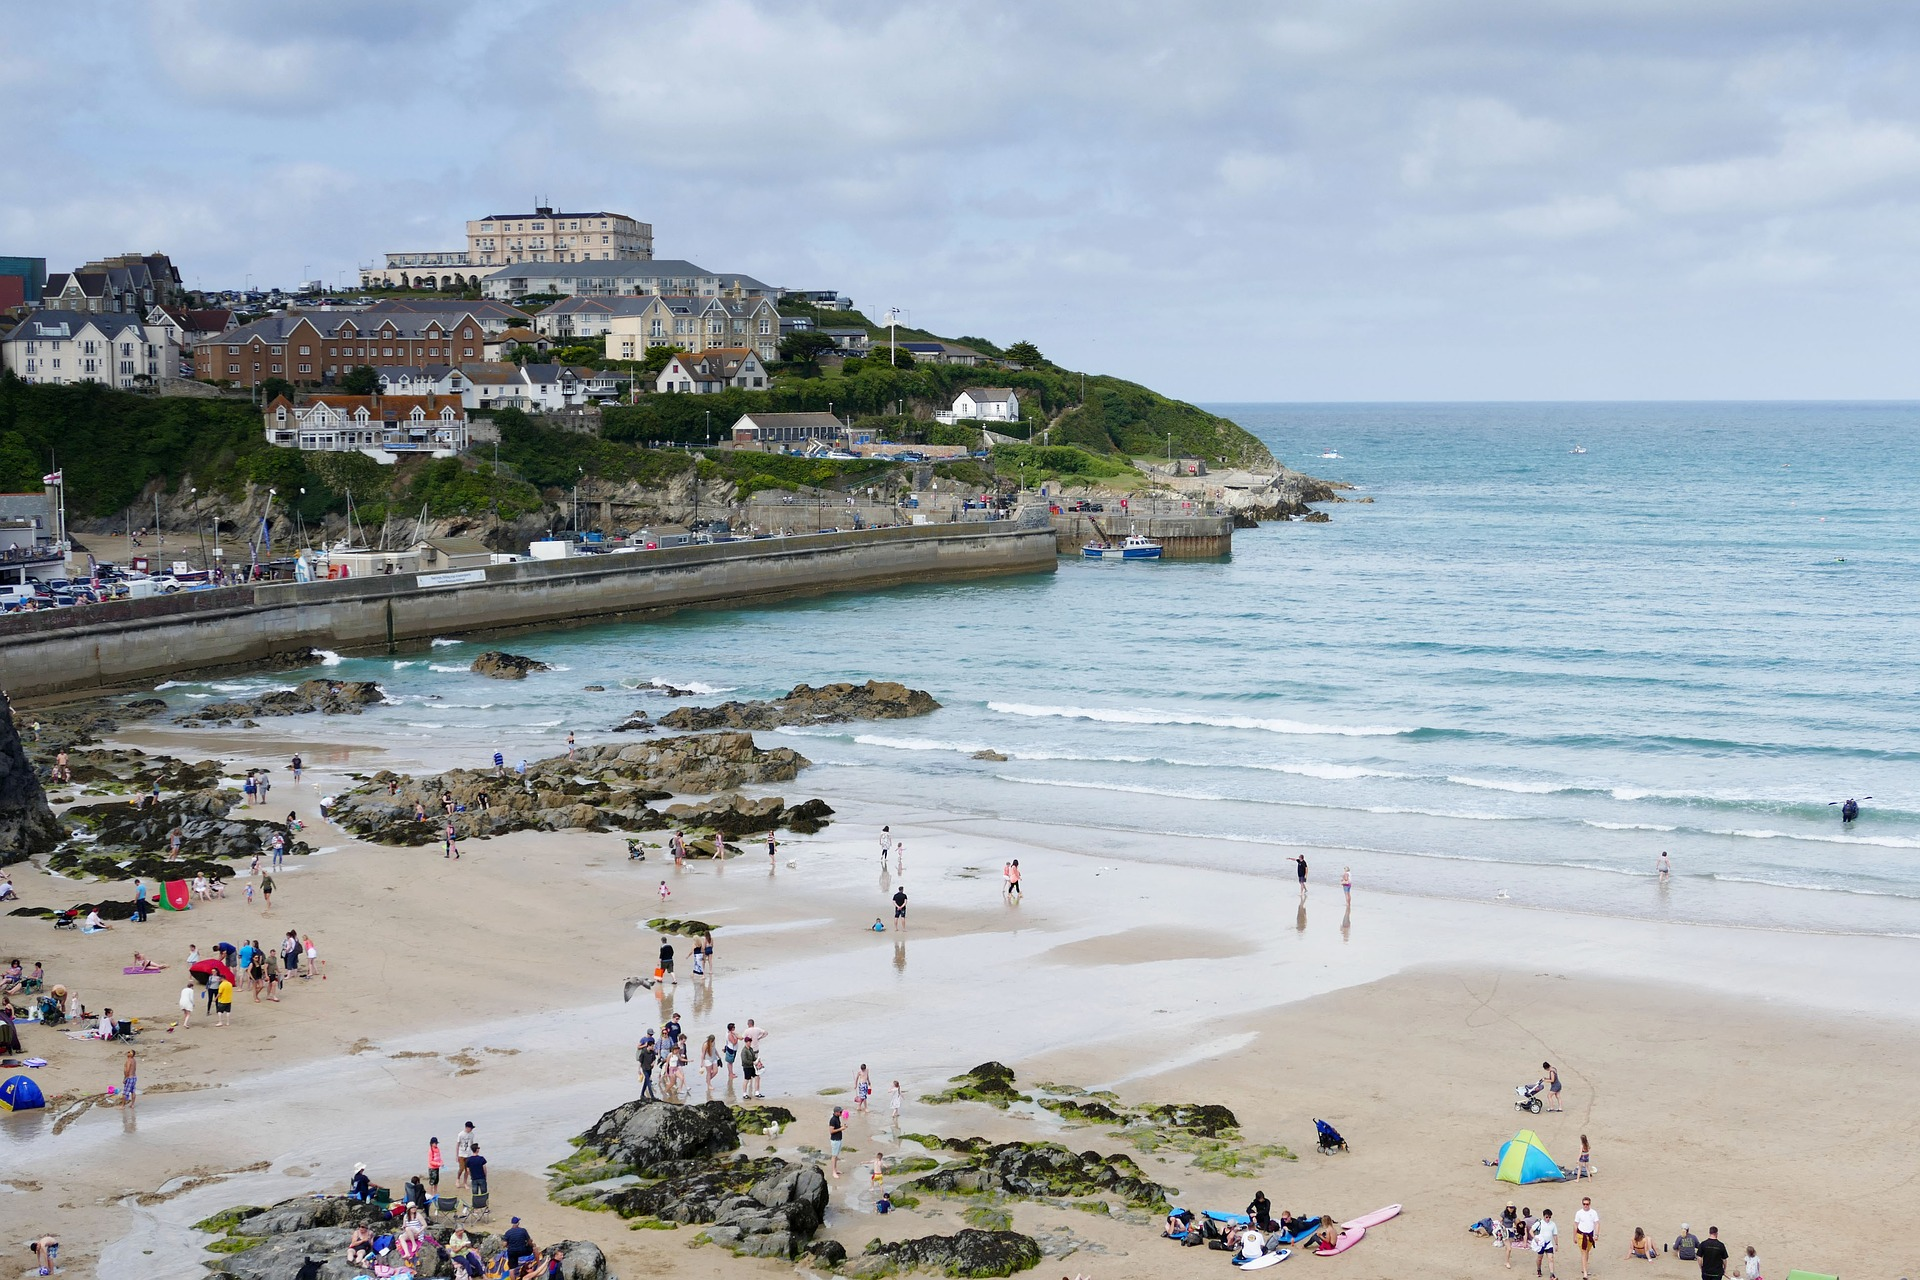 Belfast City to Newquay - Flights to Newquay set to take off from Belfast City Airport | Newry Times - Newry newspaper